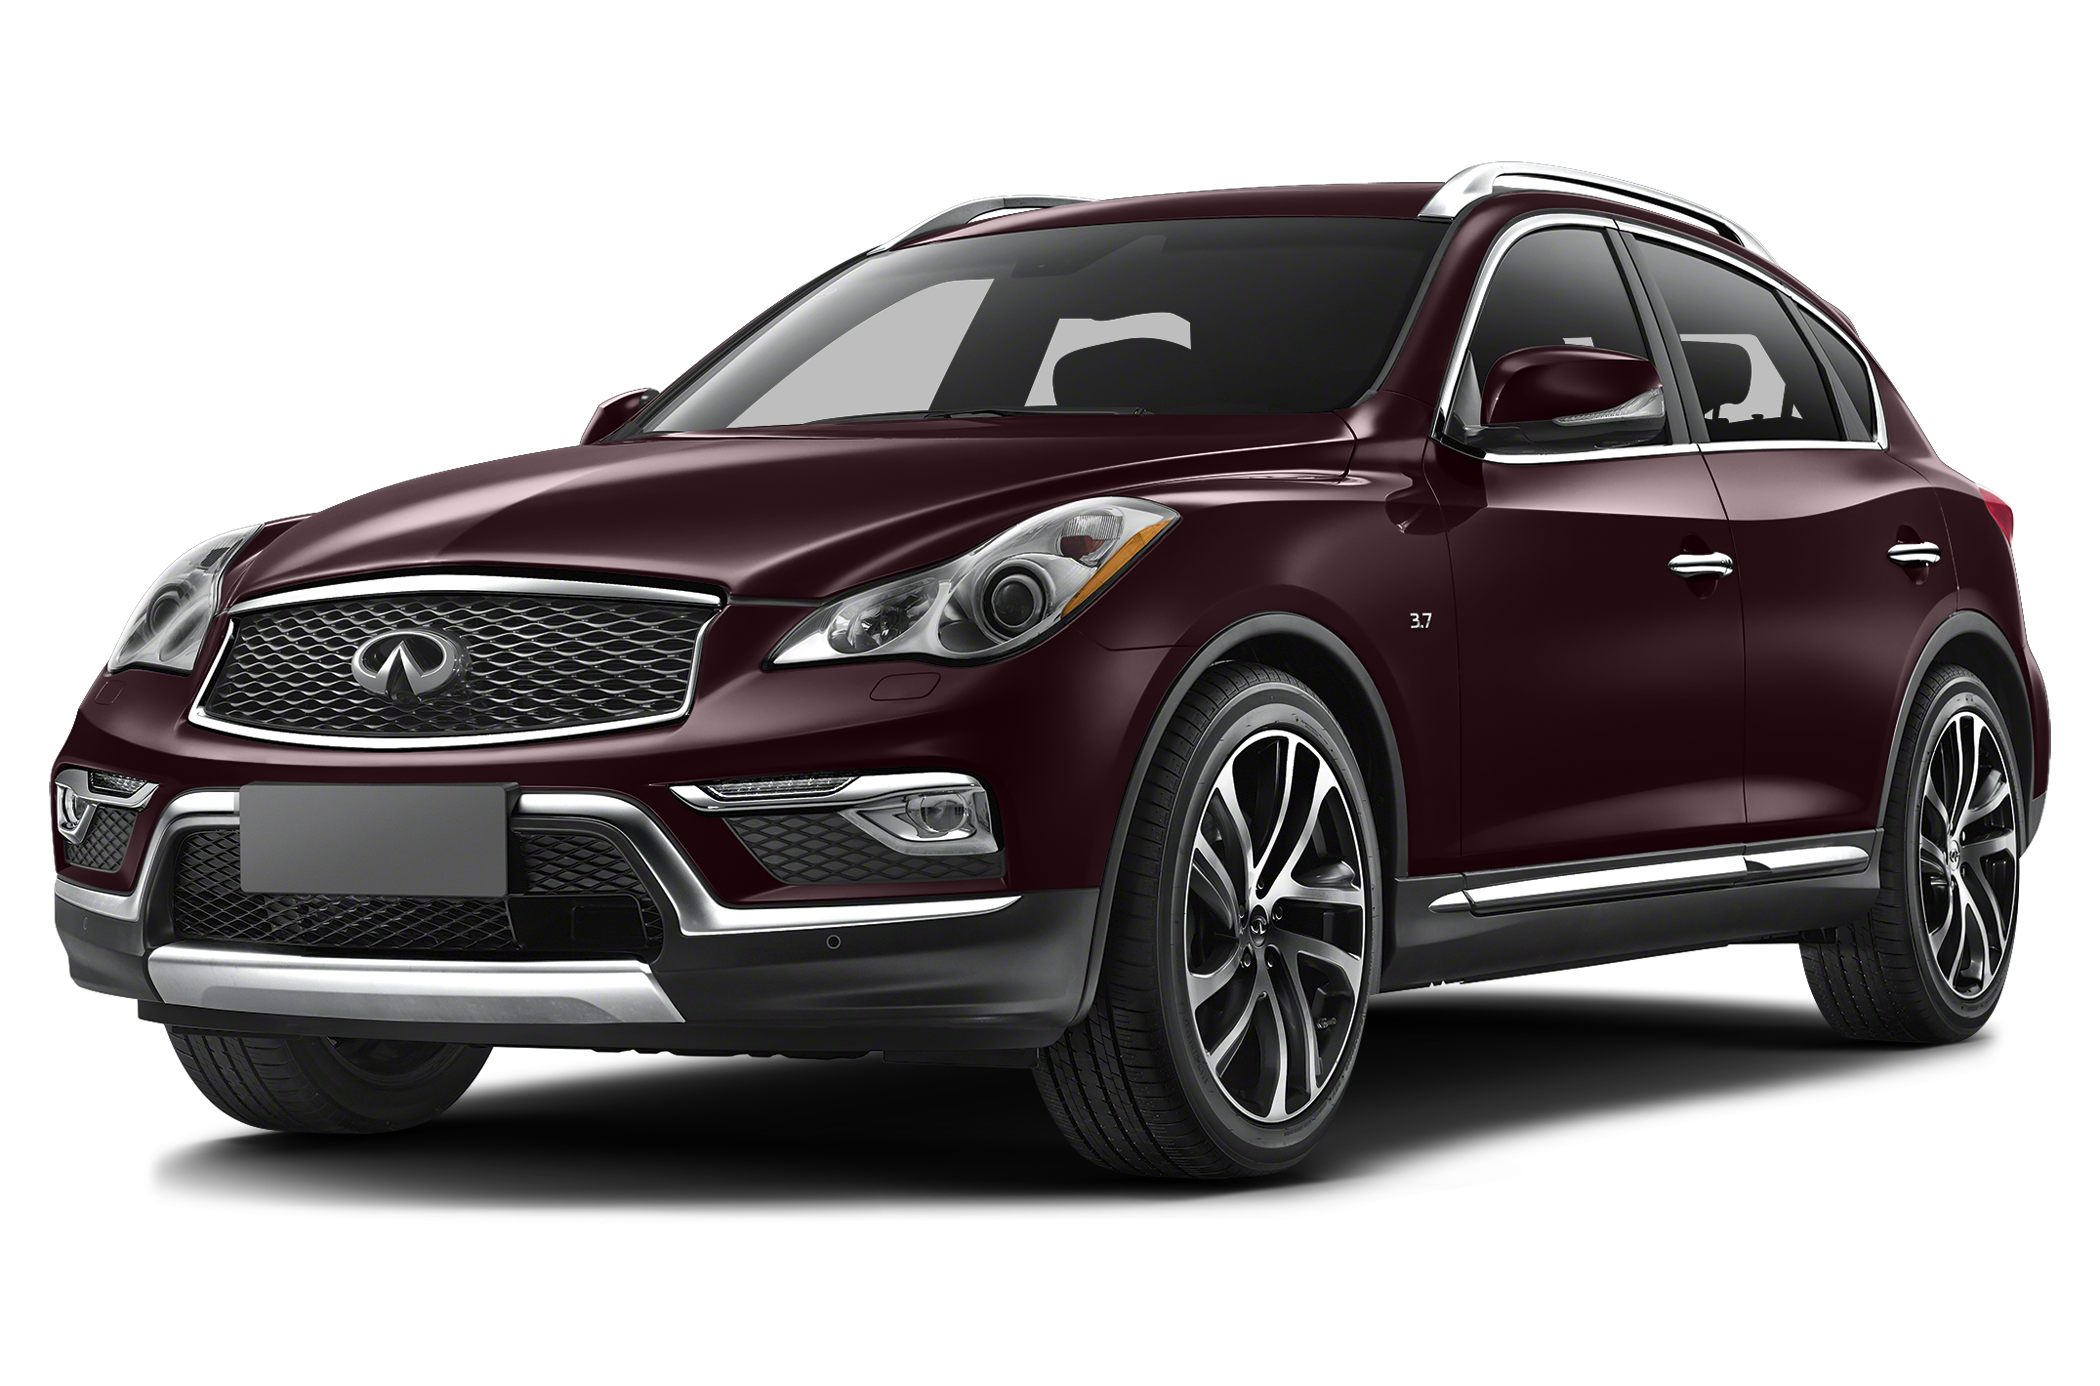 infiniti qx50 reviews infiniti qx50 price photos and specs html autos weblog. Black Bedroom Furniture Sets. Home Design Ideas